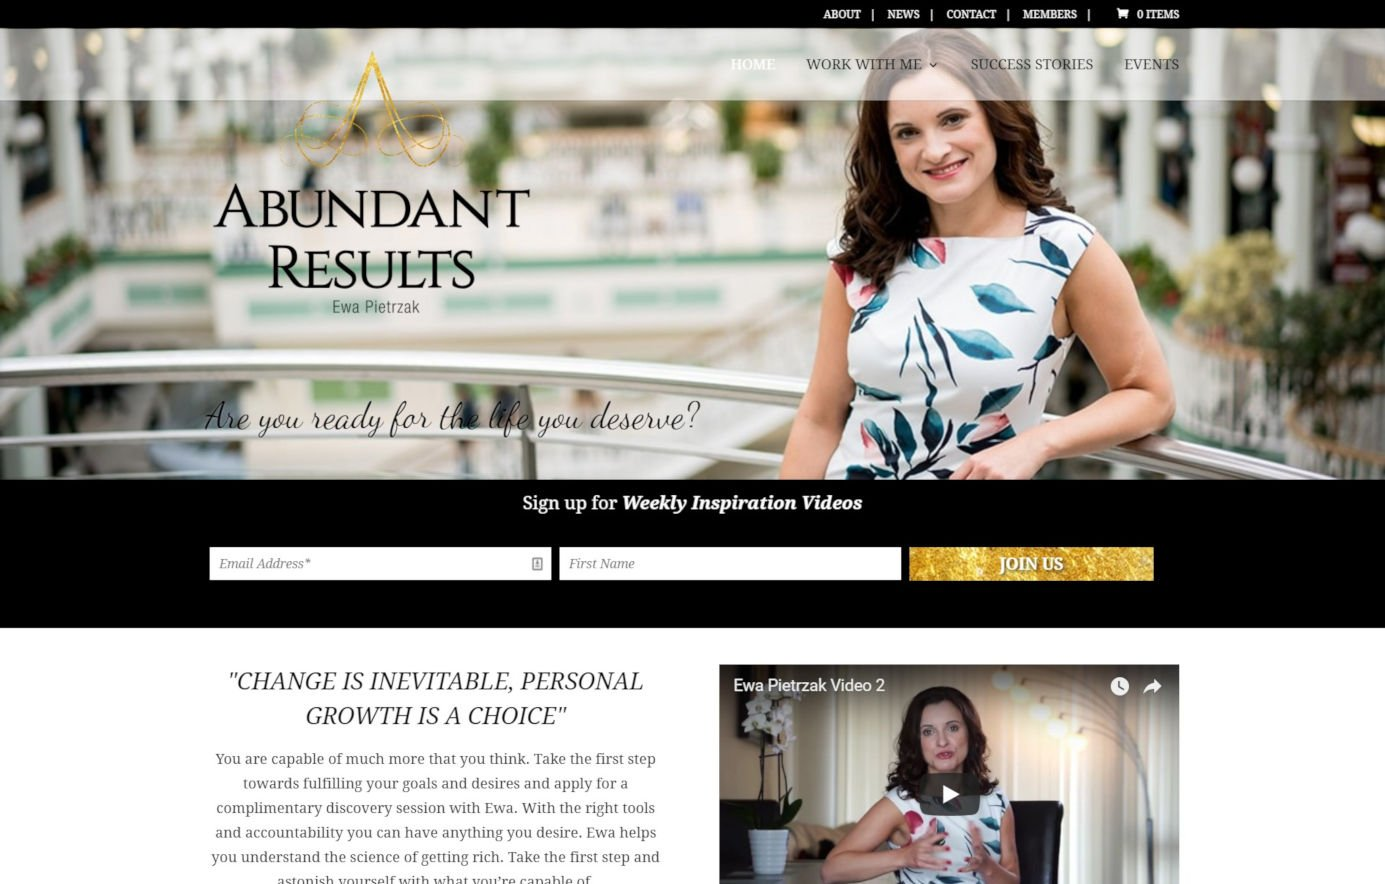 Abundant Results - Coaching Website Design - Featured